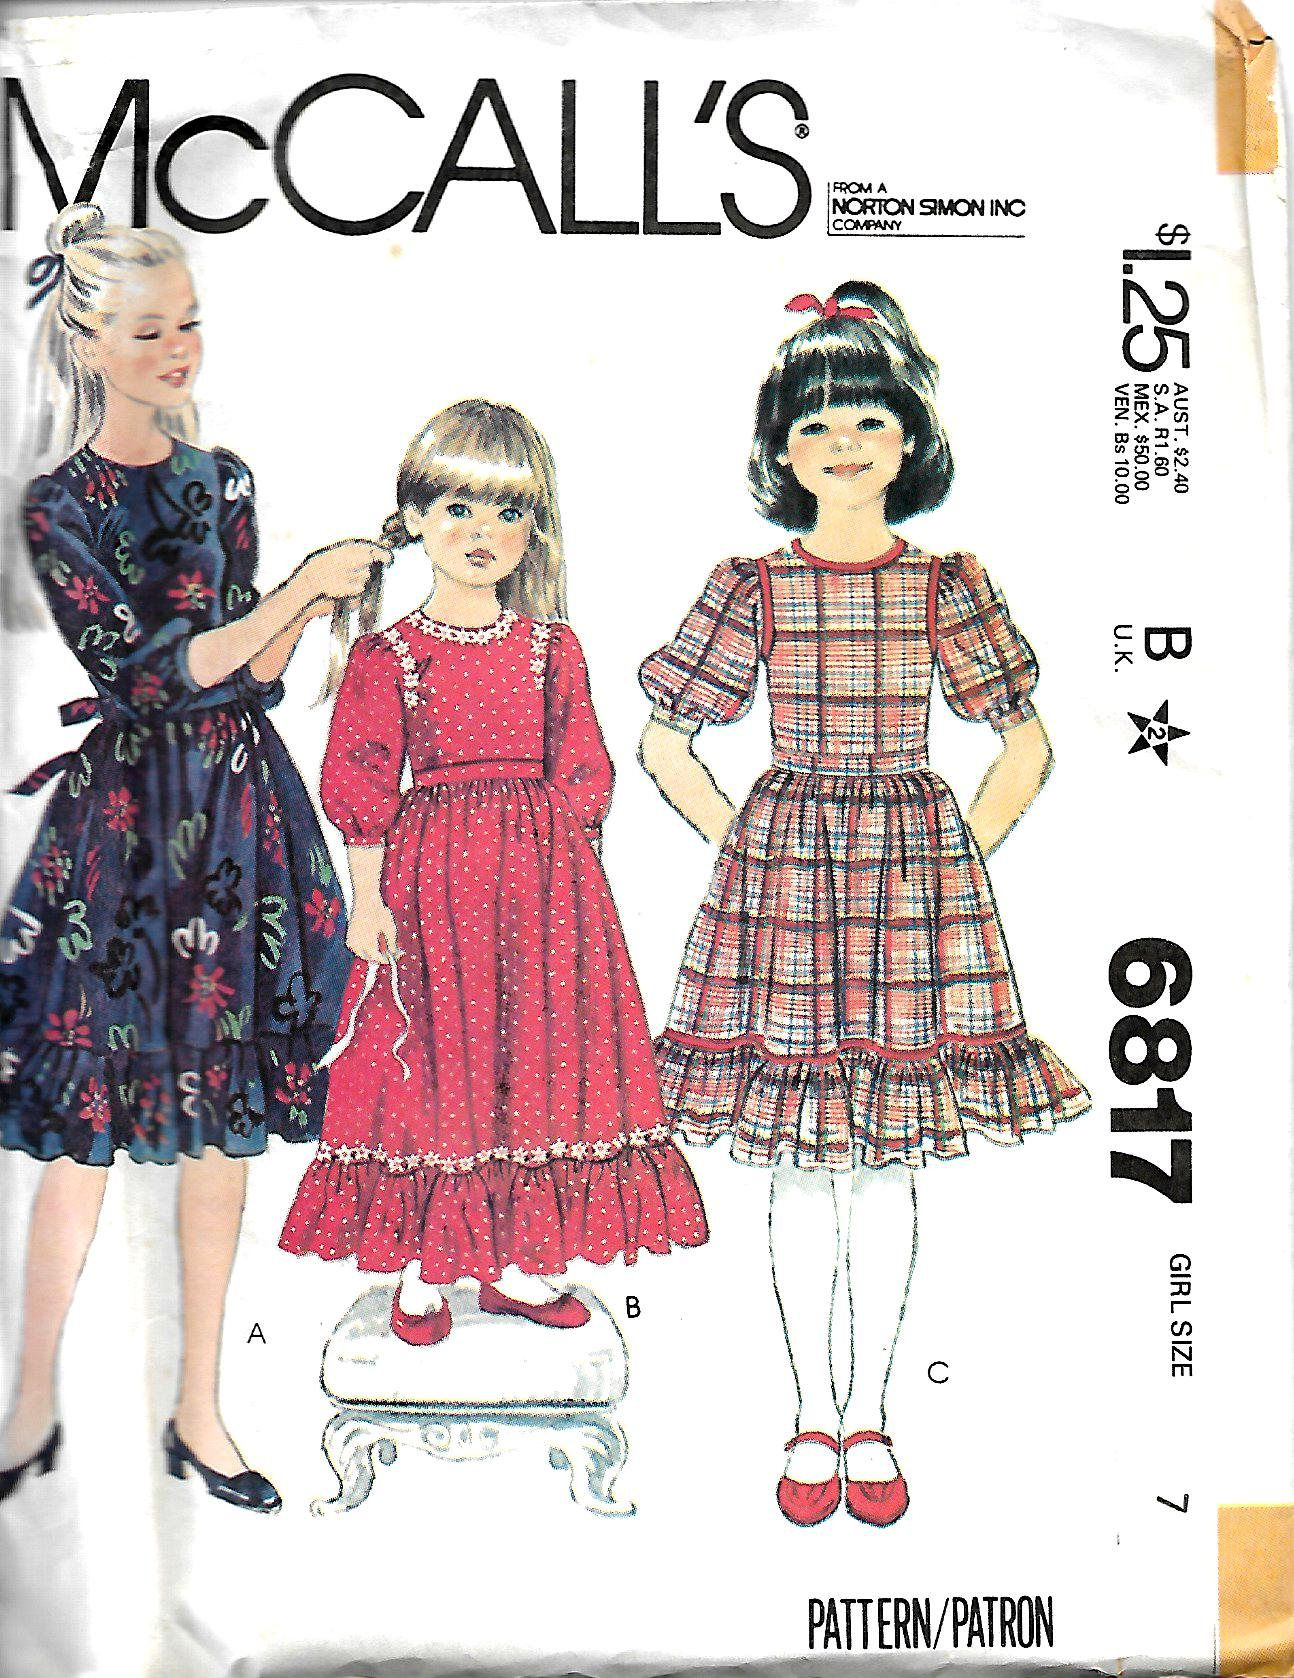 Mccalls 6817 girls ruffled dress pattern two lengths size 7 vintage 1979 sewing pattern mccalls 6817 girls ruffled edge dress size 7 breast 26 inches complete by goofingoffsewing on etsy jeuxipadfo Choice Image